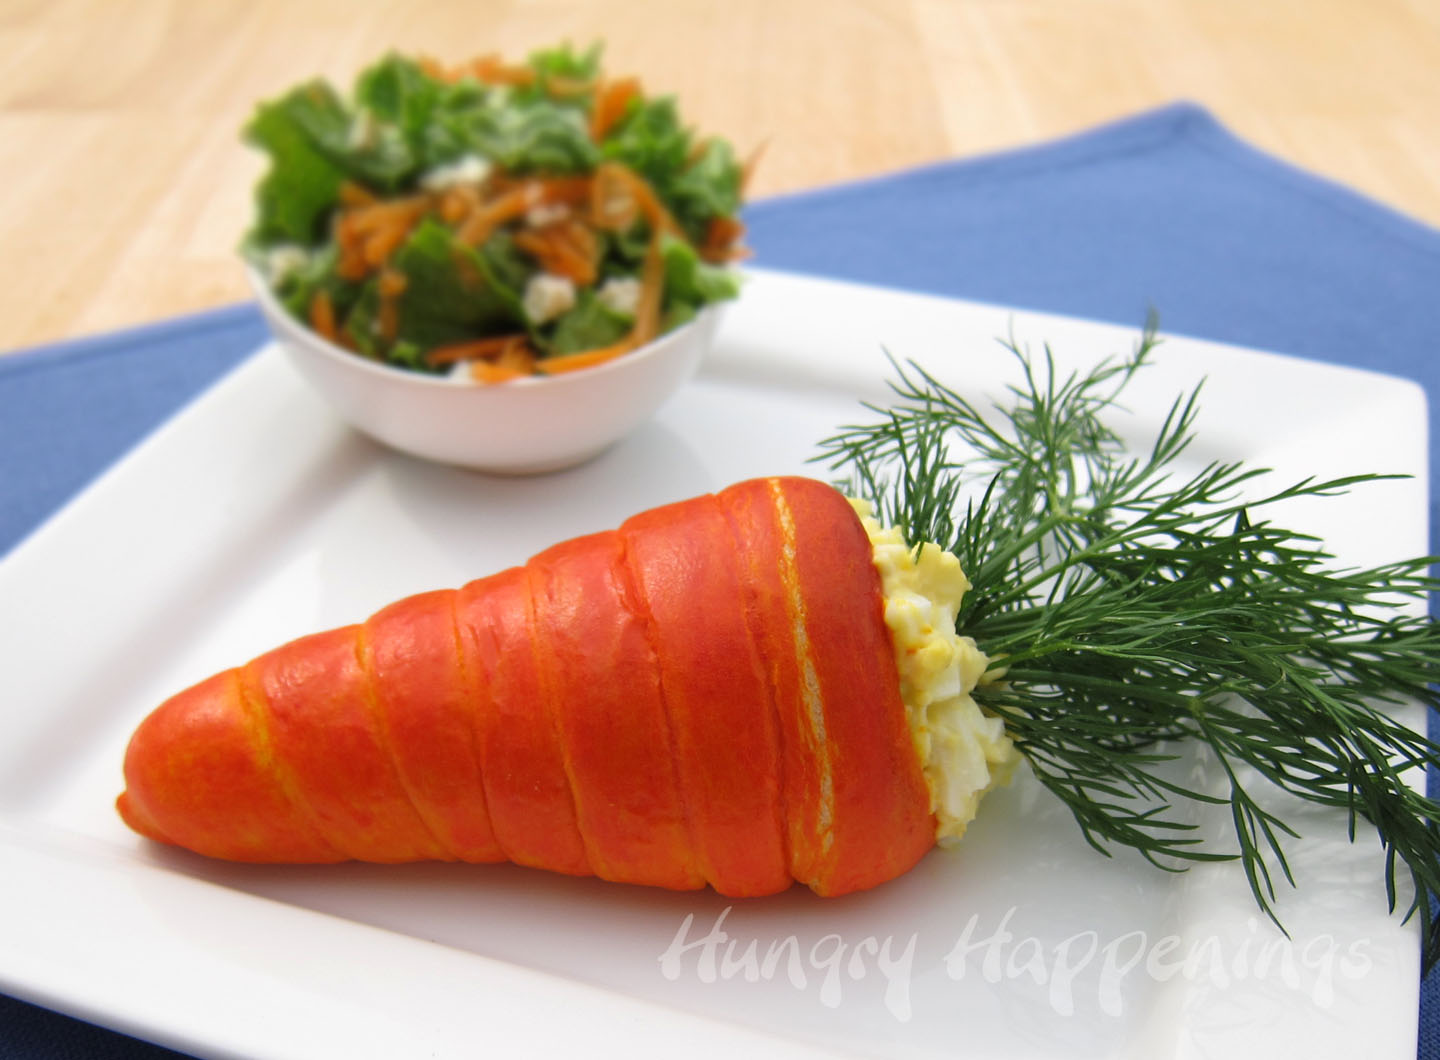 Are You Having Trouble Getting Your Kids To Eat Vegetables Try Making These Fun Carrot